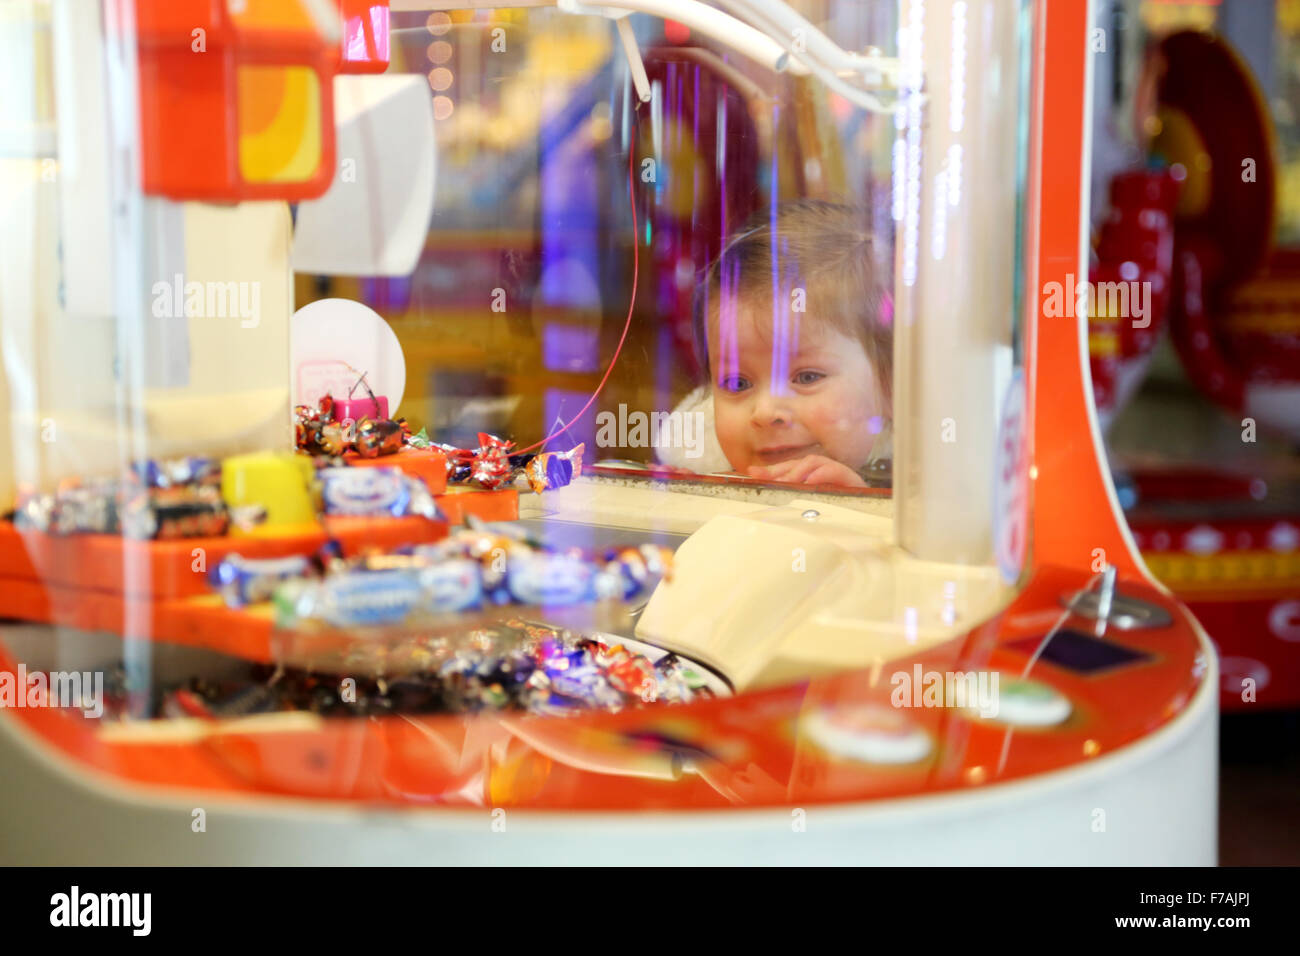 A young child looking into a grab machine in a traditional English amusement arcade. the machine offers sweets and - Stock Image